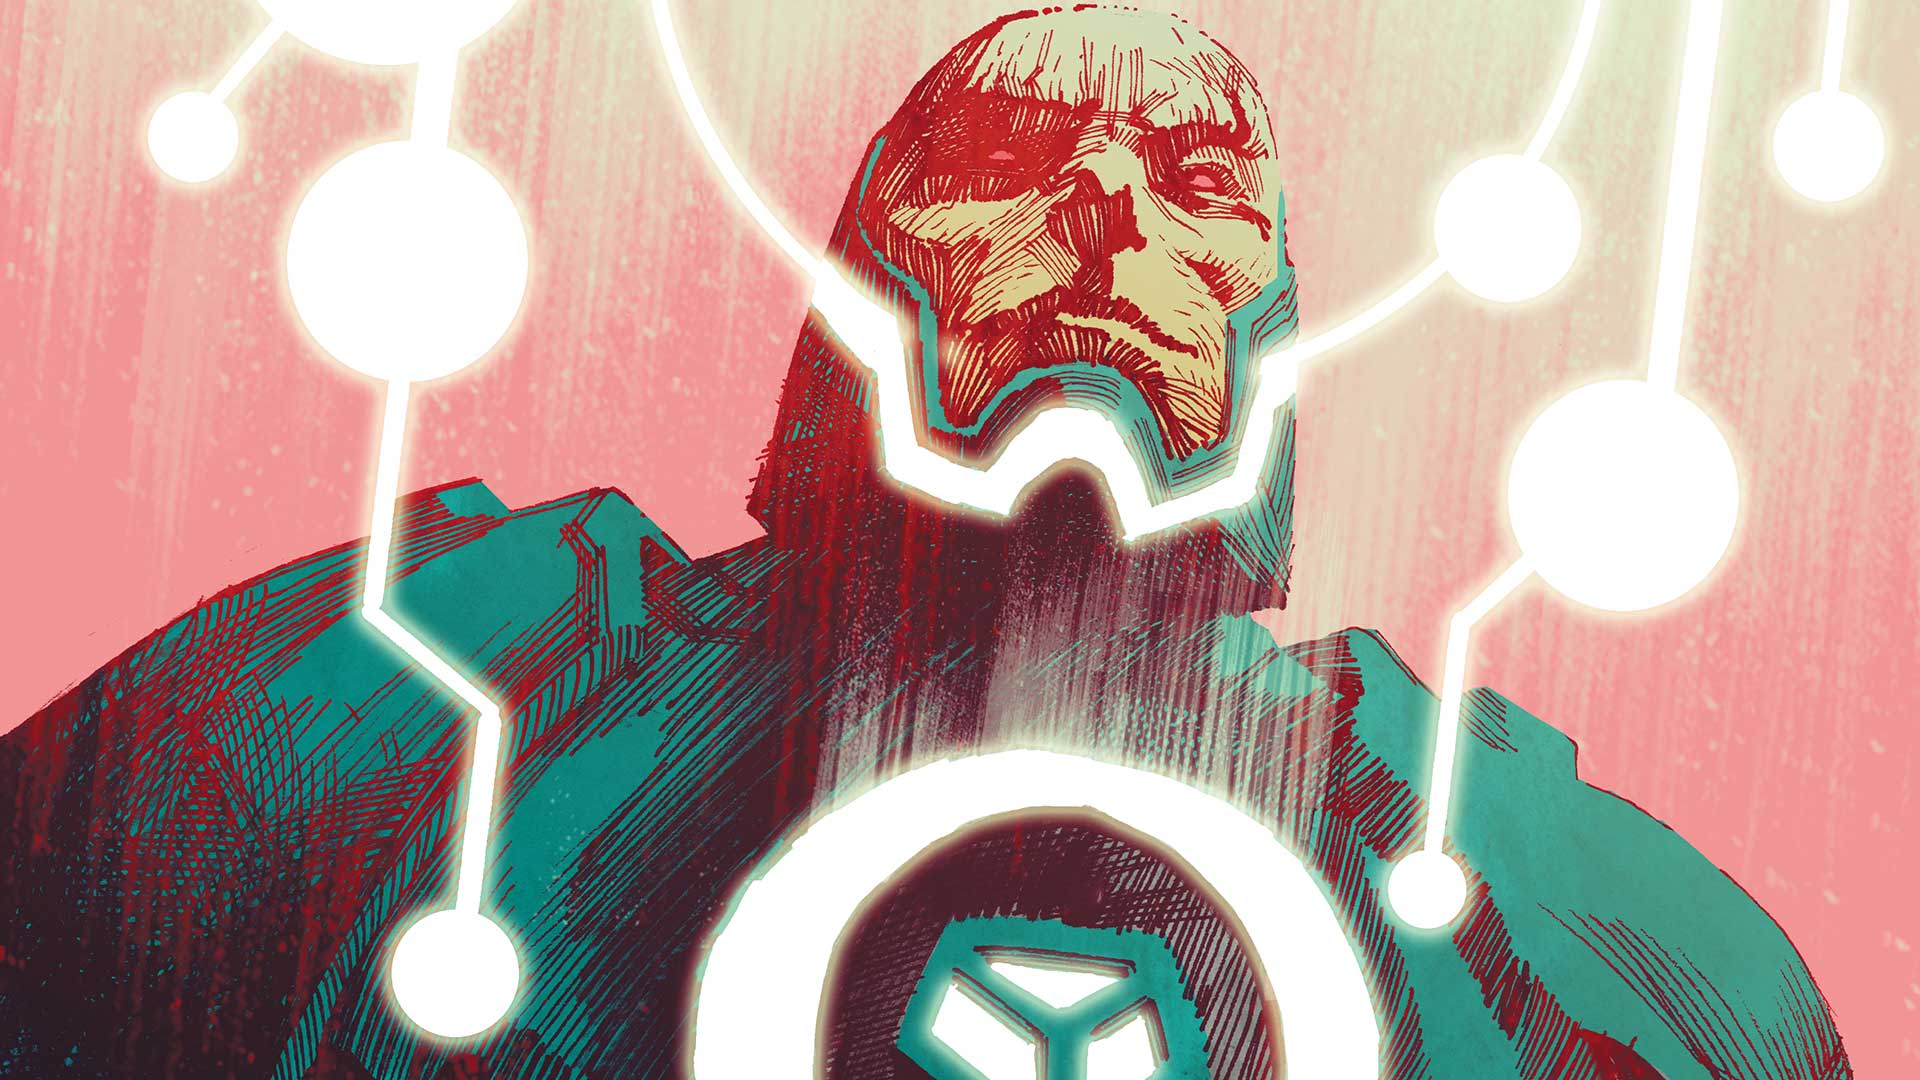 Darkseid in 'Justice League: Darkseid War'. (Source: DC Comics)